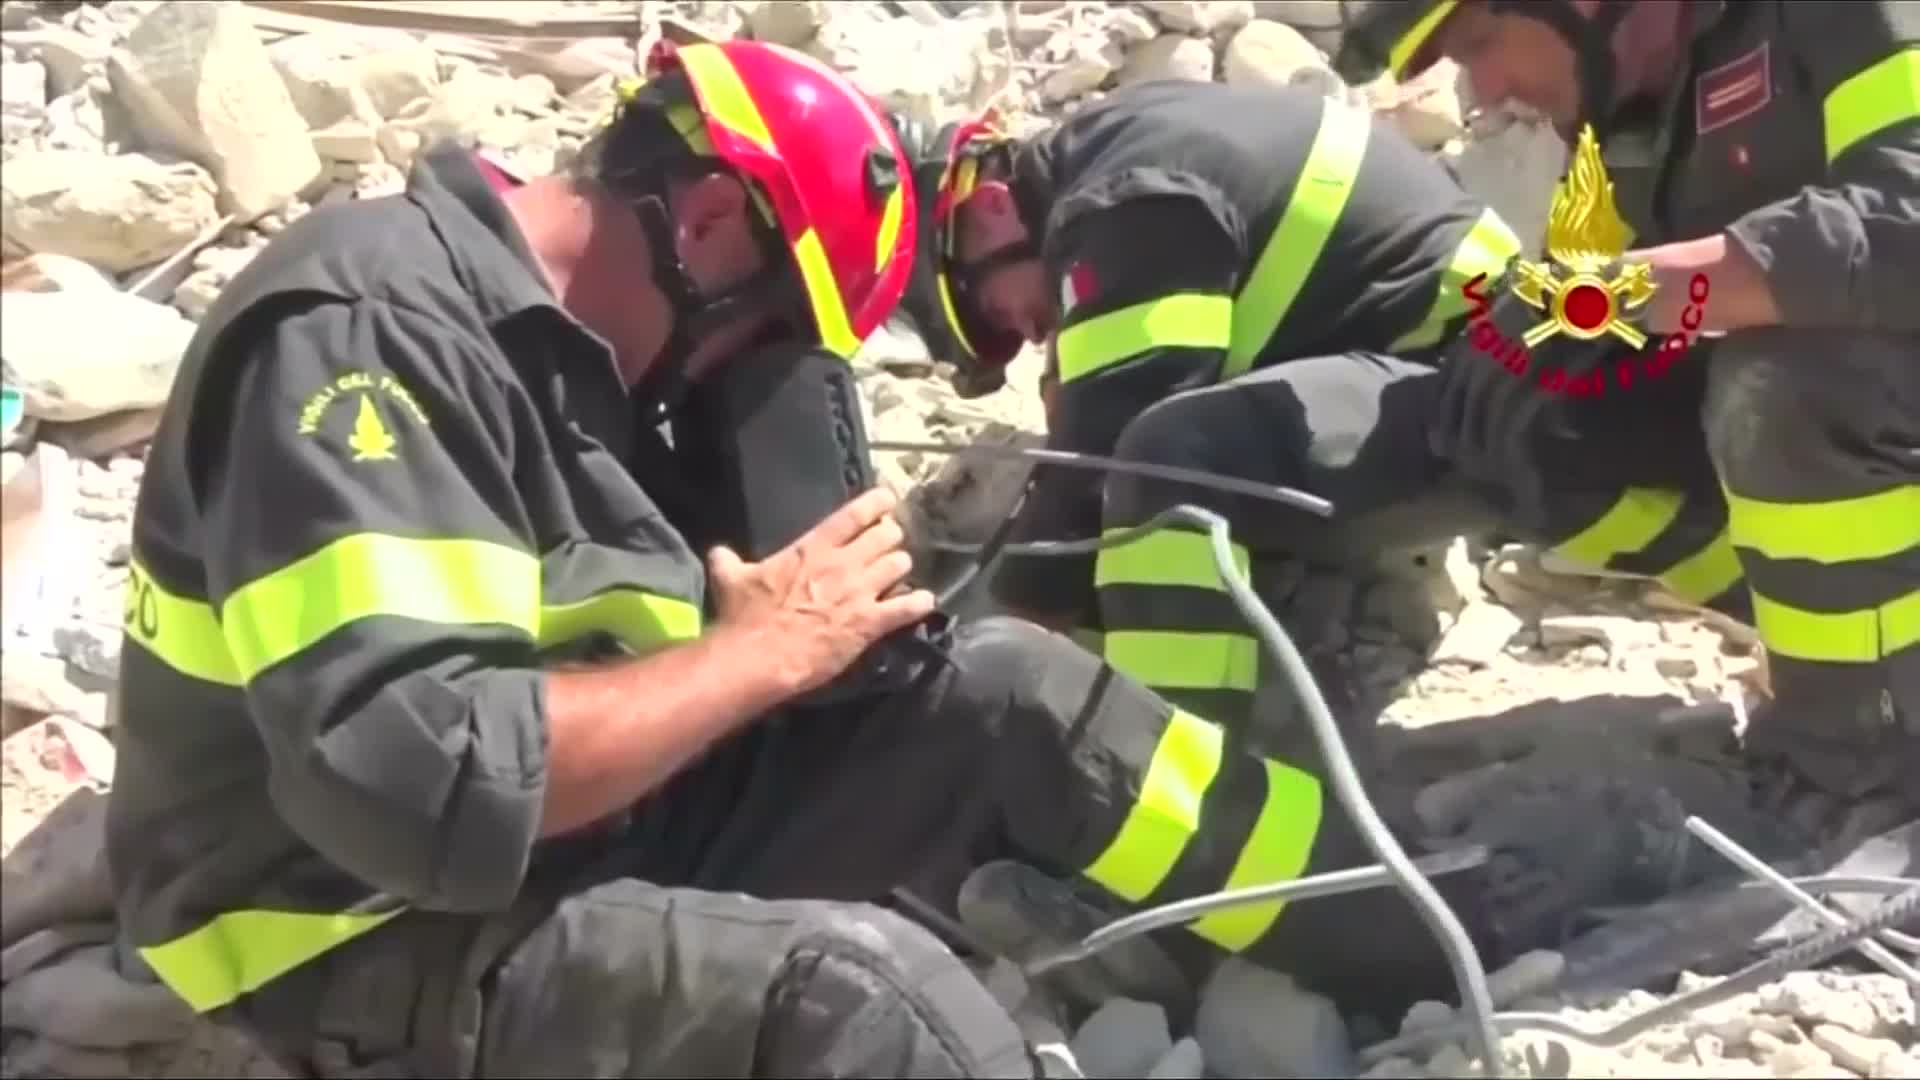 State funeral for some of the quake victims in Amatrice